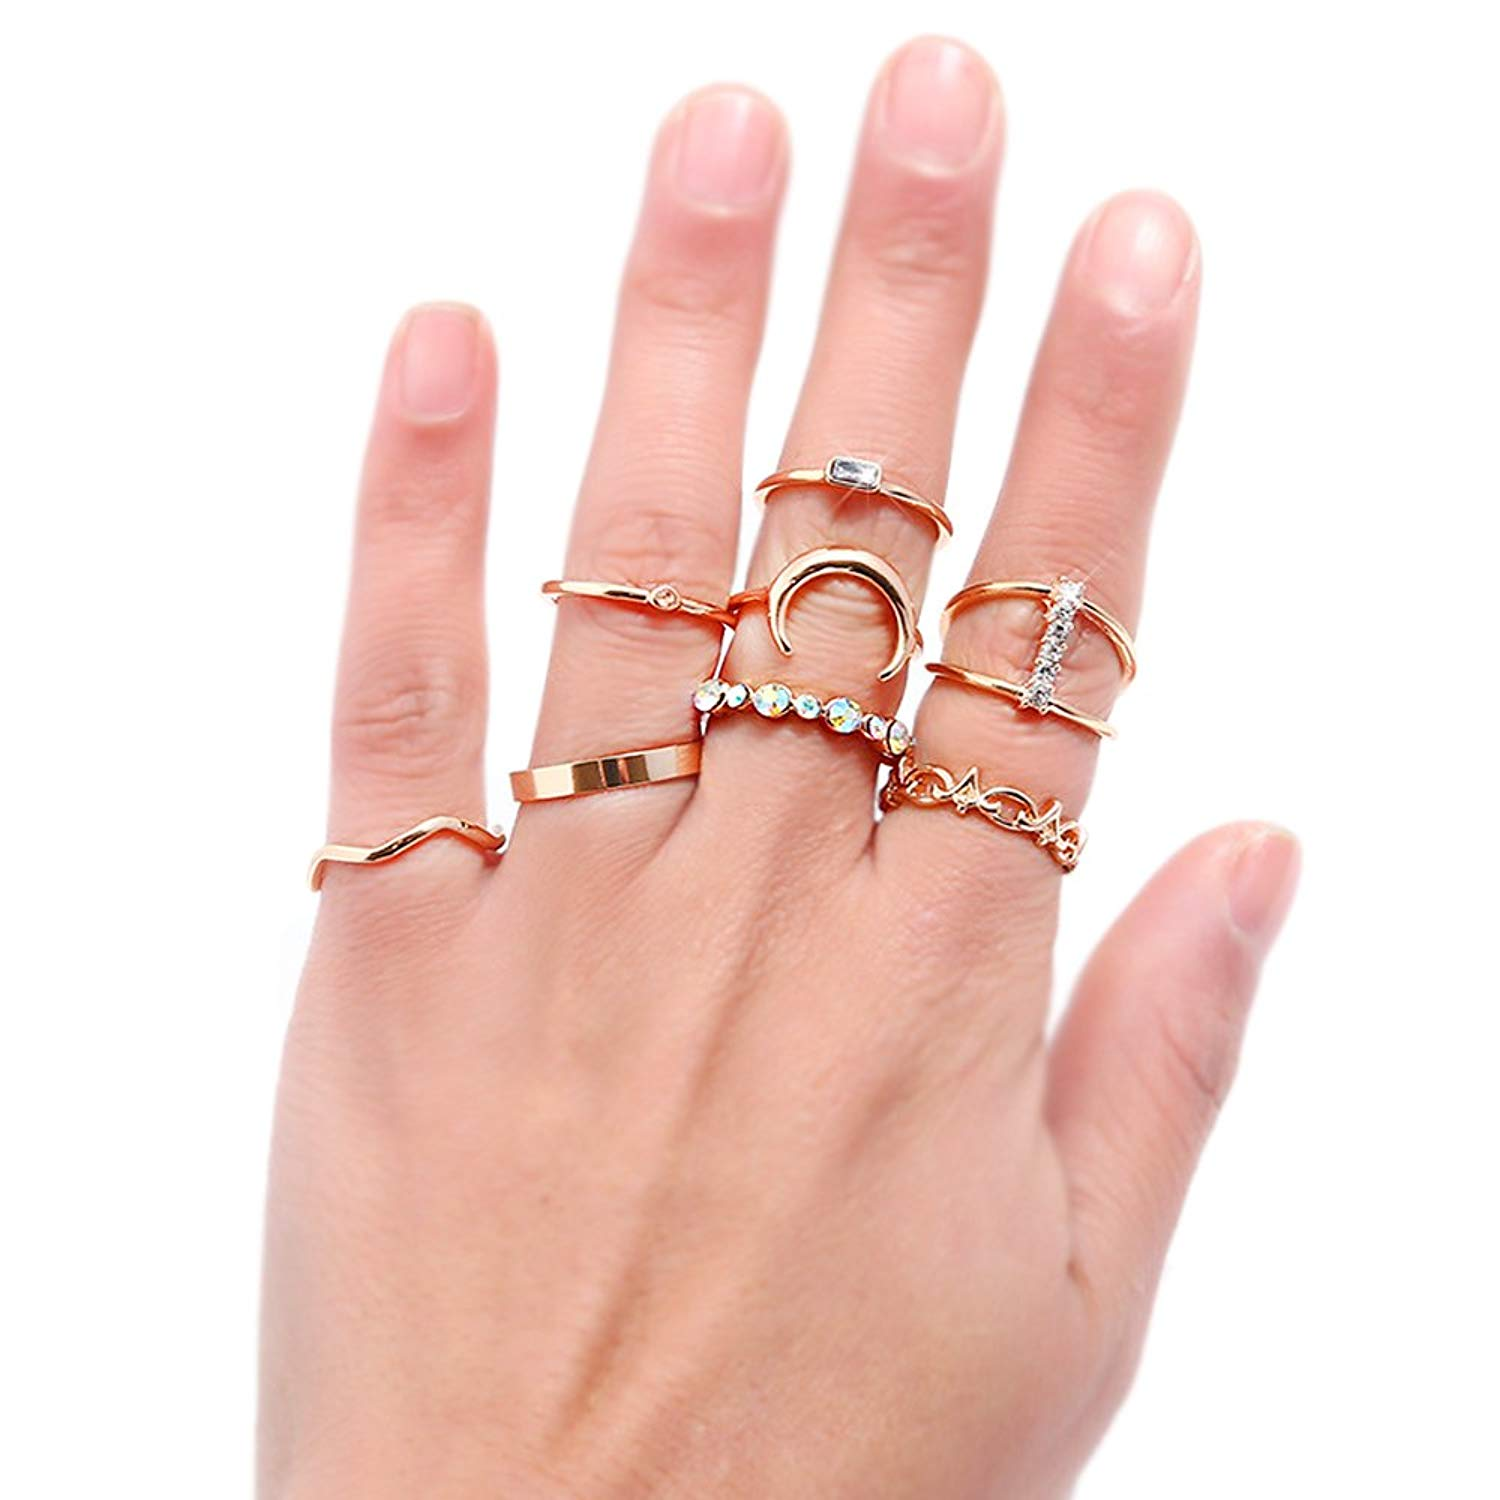 Get Quotations · AMOR SPES 8PCS Rings for Women Knuckle Rings Finger Ring  Toe Rings Beach Jewelry Sets 18K f0af8f359609